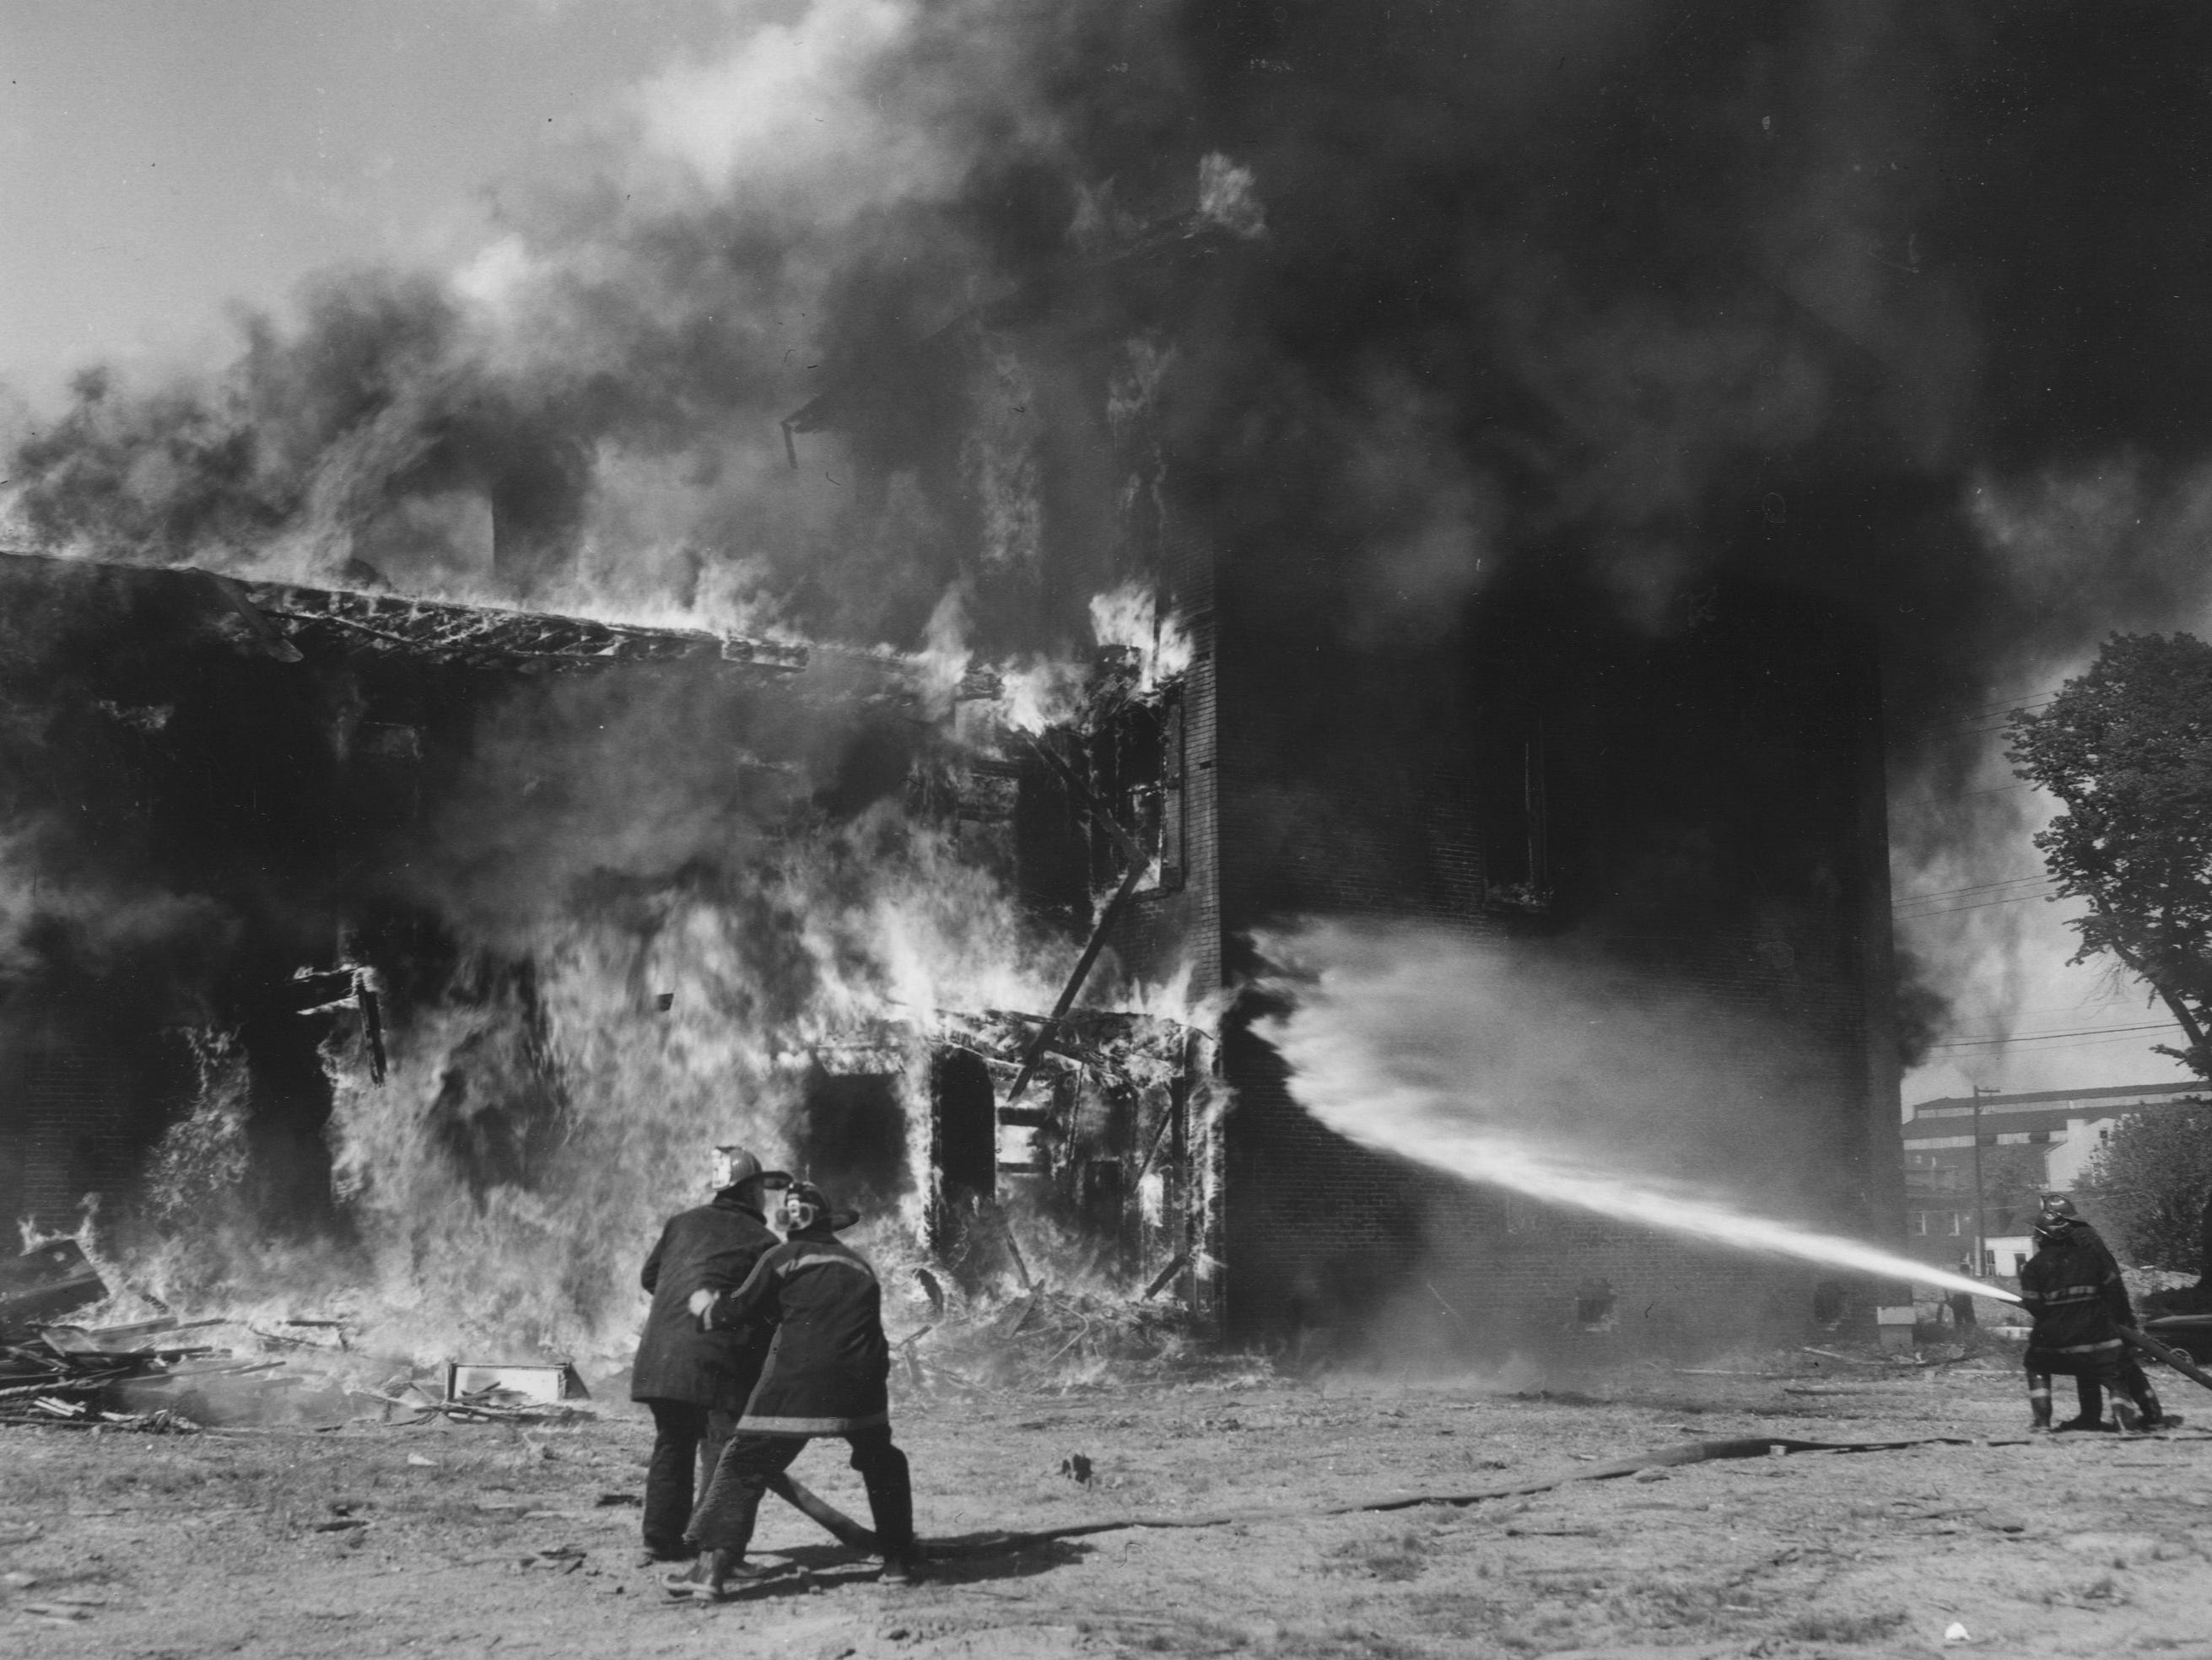 A rush job was executed by fire at 3:56 p.m. yesterday in a three-story, 530 S. English brick building slated for razing by Urban Renewal. 